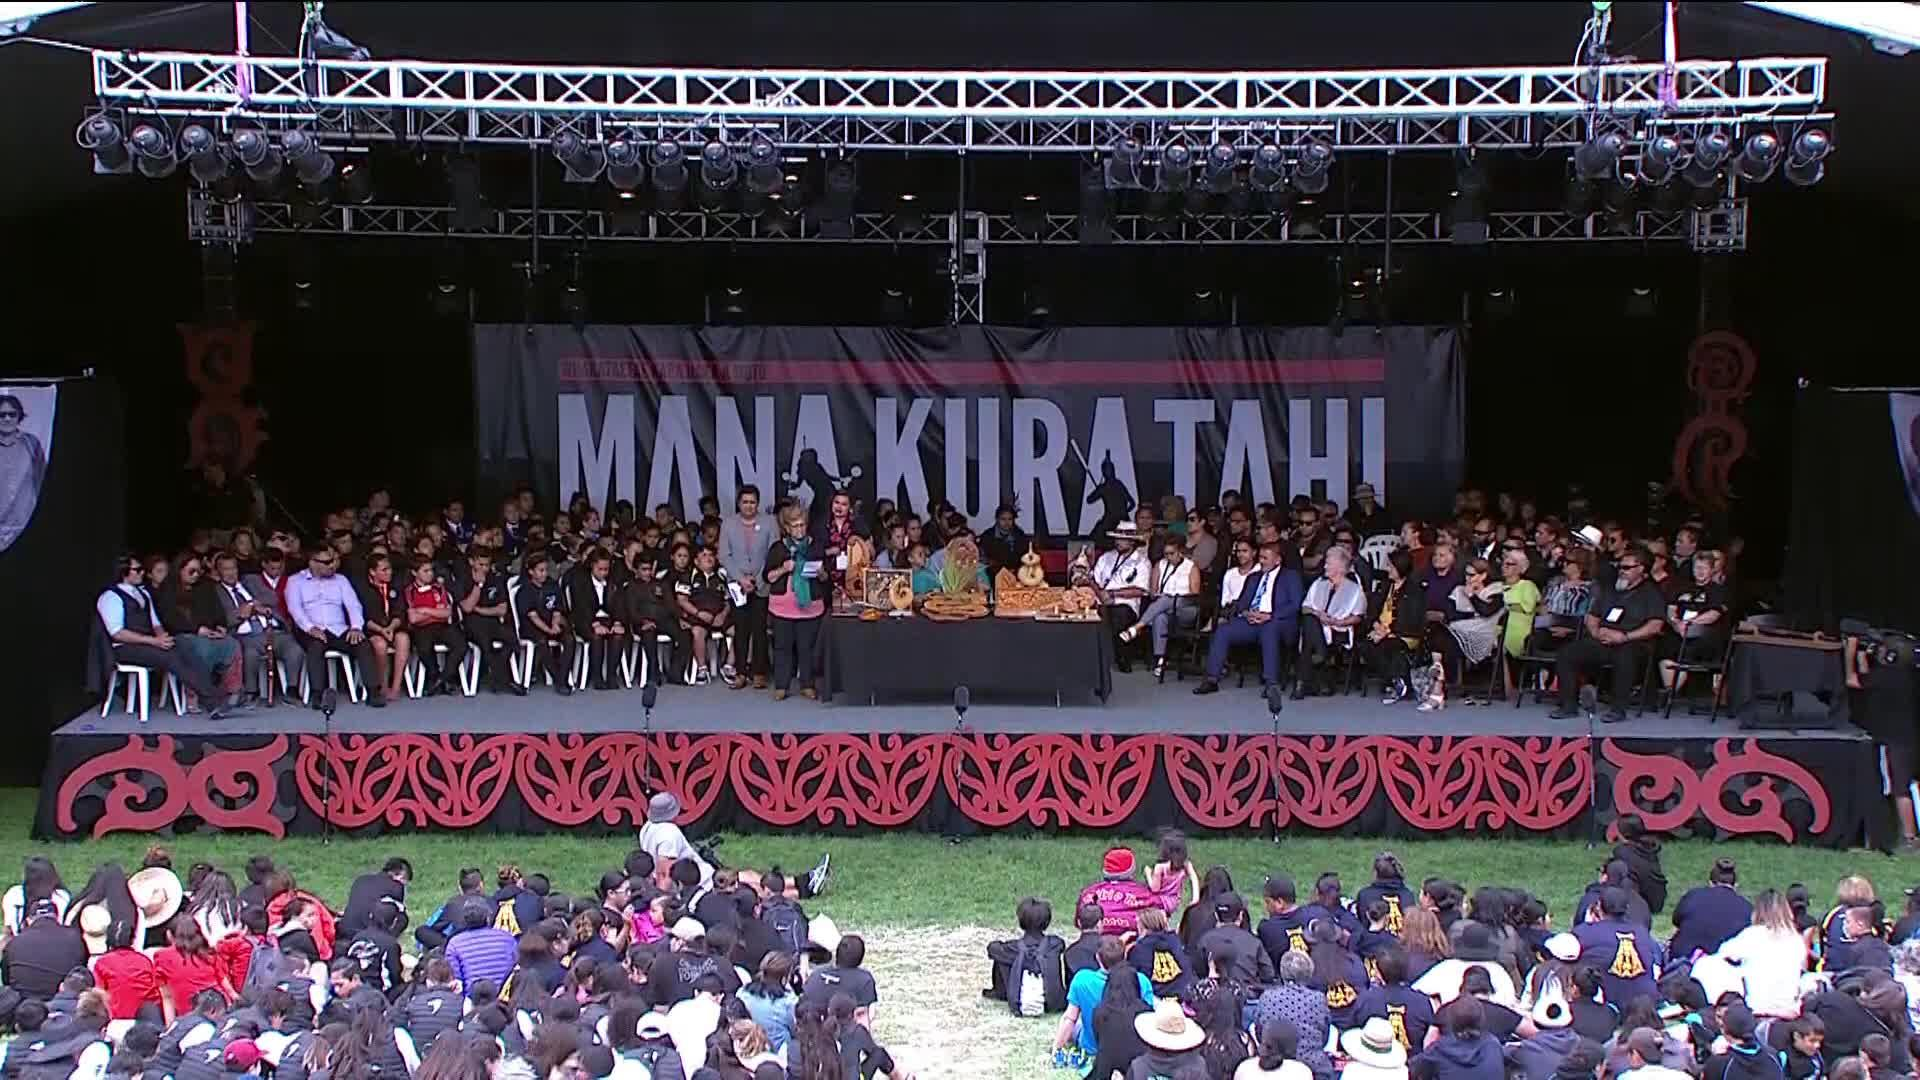 Video for Full results for Te Mana Kuratahi 2017